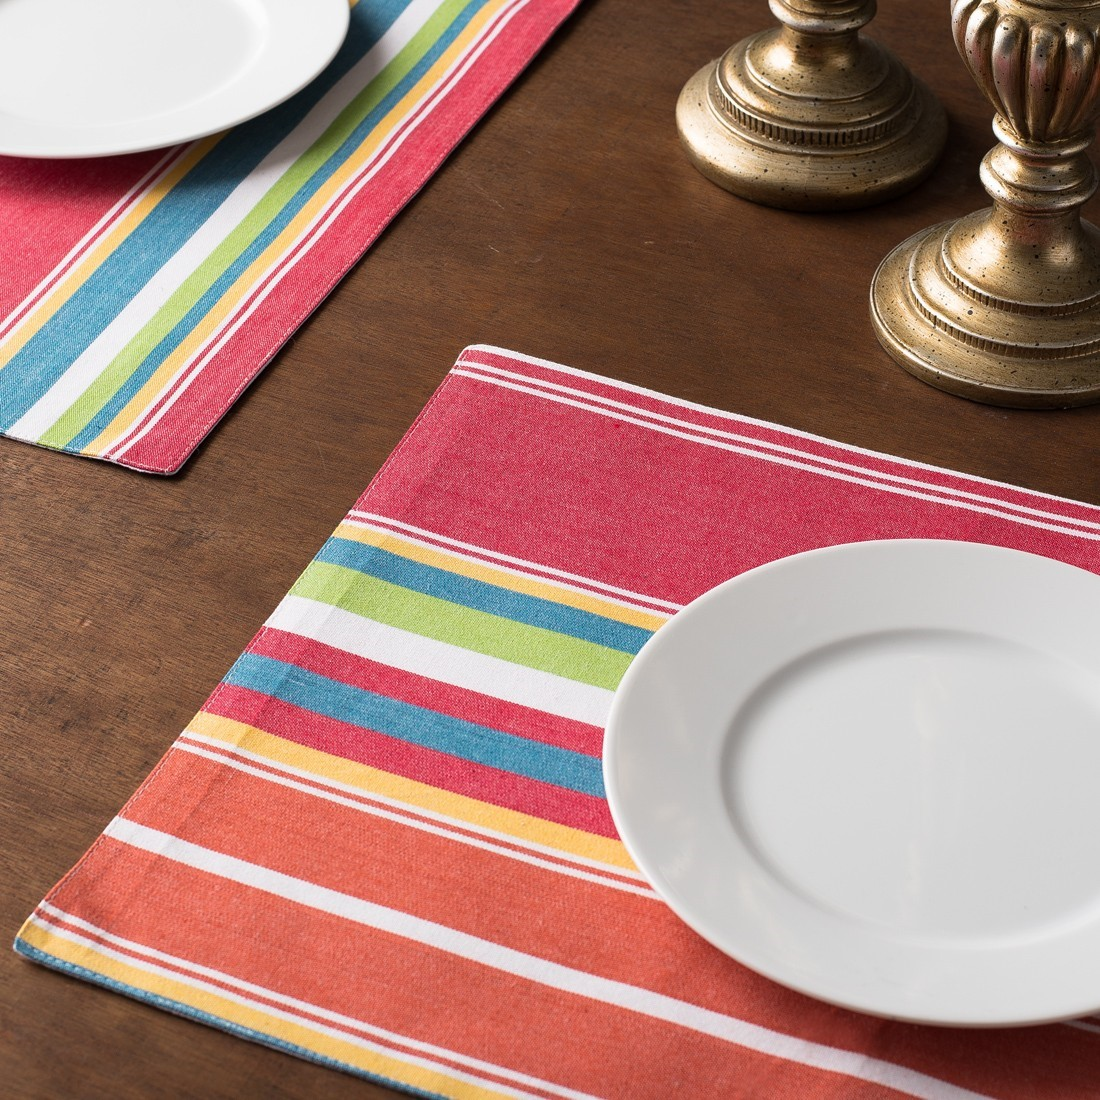 Linen Tablecloth Striped Placemt Set (Set of 4), Sunset by Linen Tablecloth